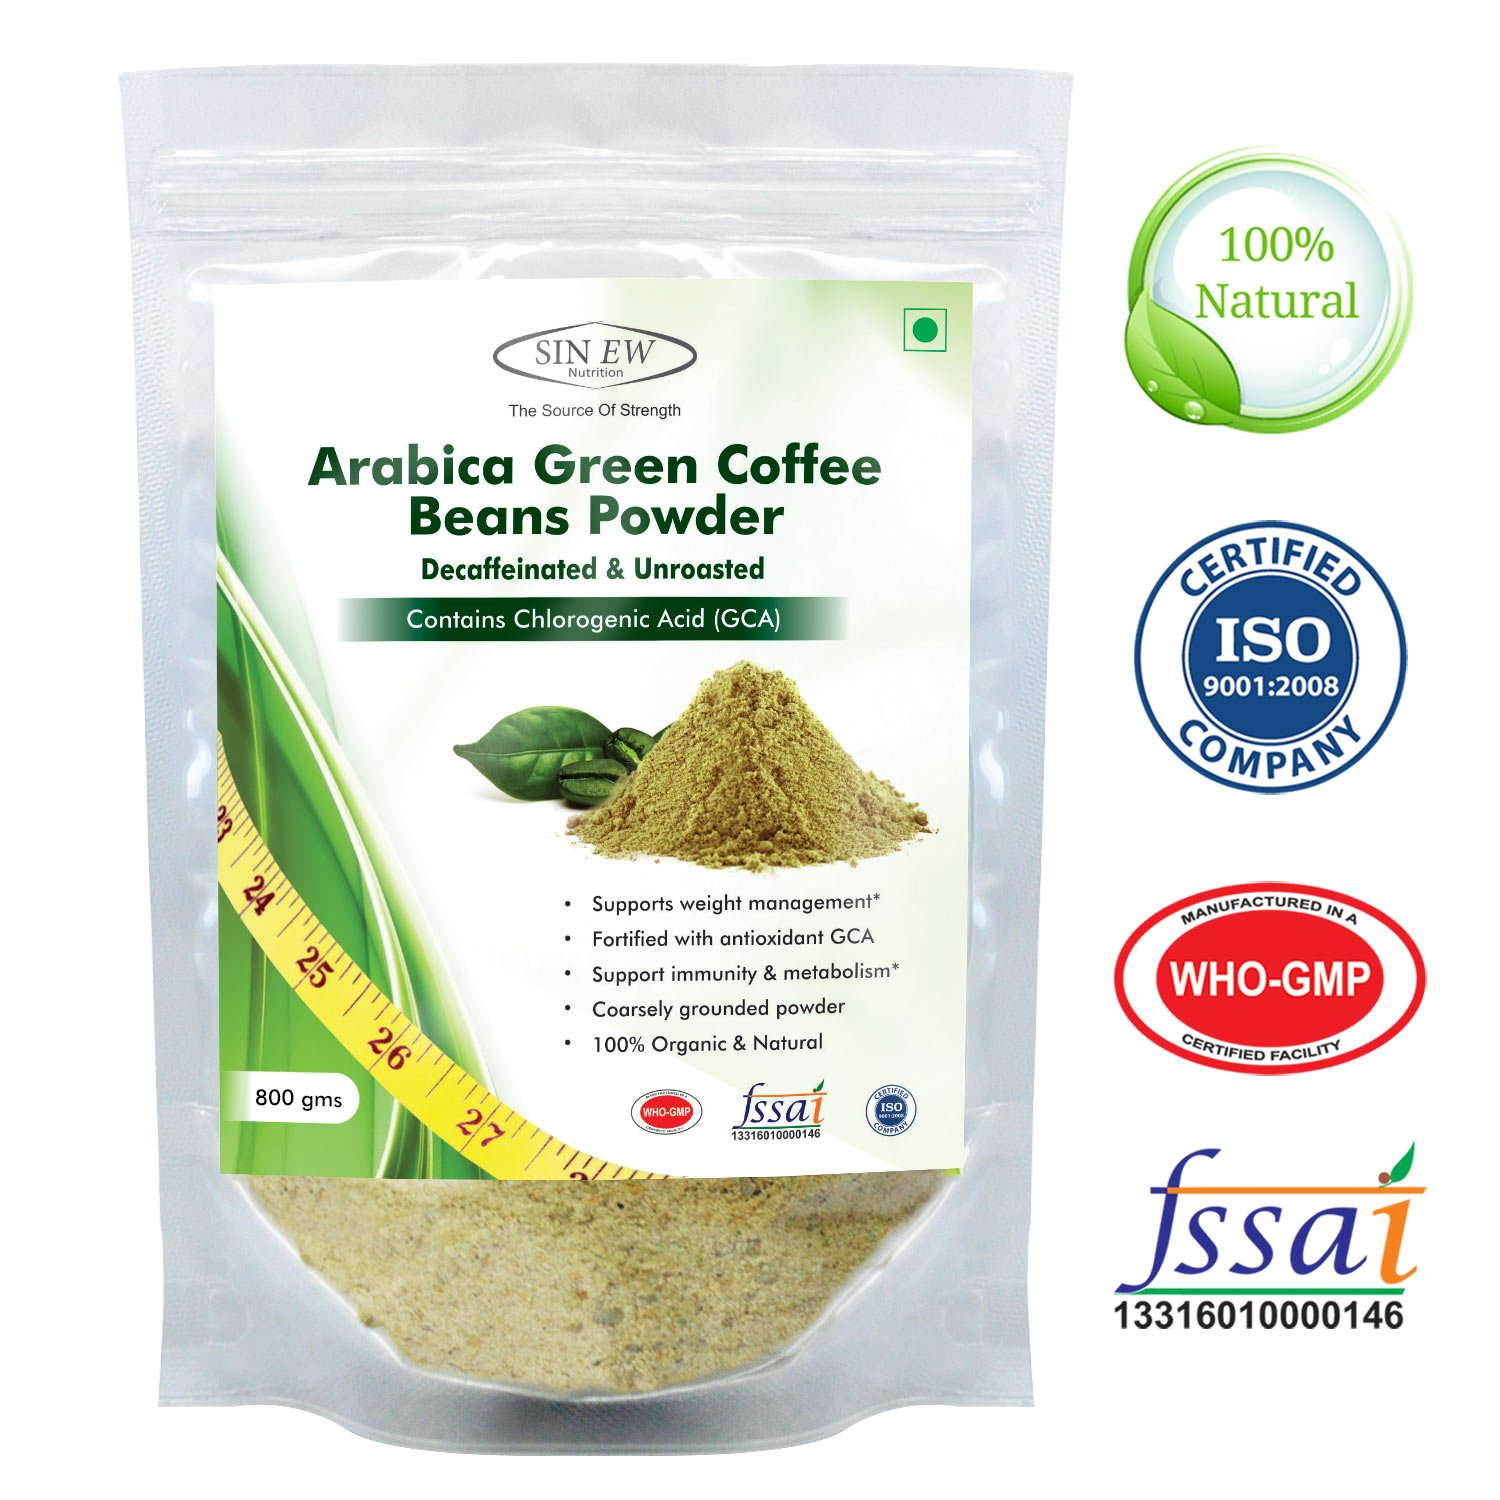 50% off or More On Vitamins & Supplements By Amazon | Sinew Nutrition Arabica Green Coffee Beans Powder 800gm, Decaffeinated & Unroasted Arabica Coffee for Weight Management @ Rs.2,399